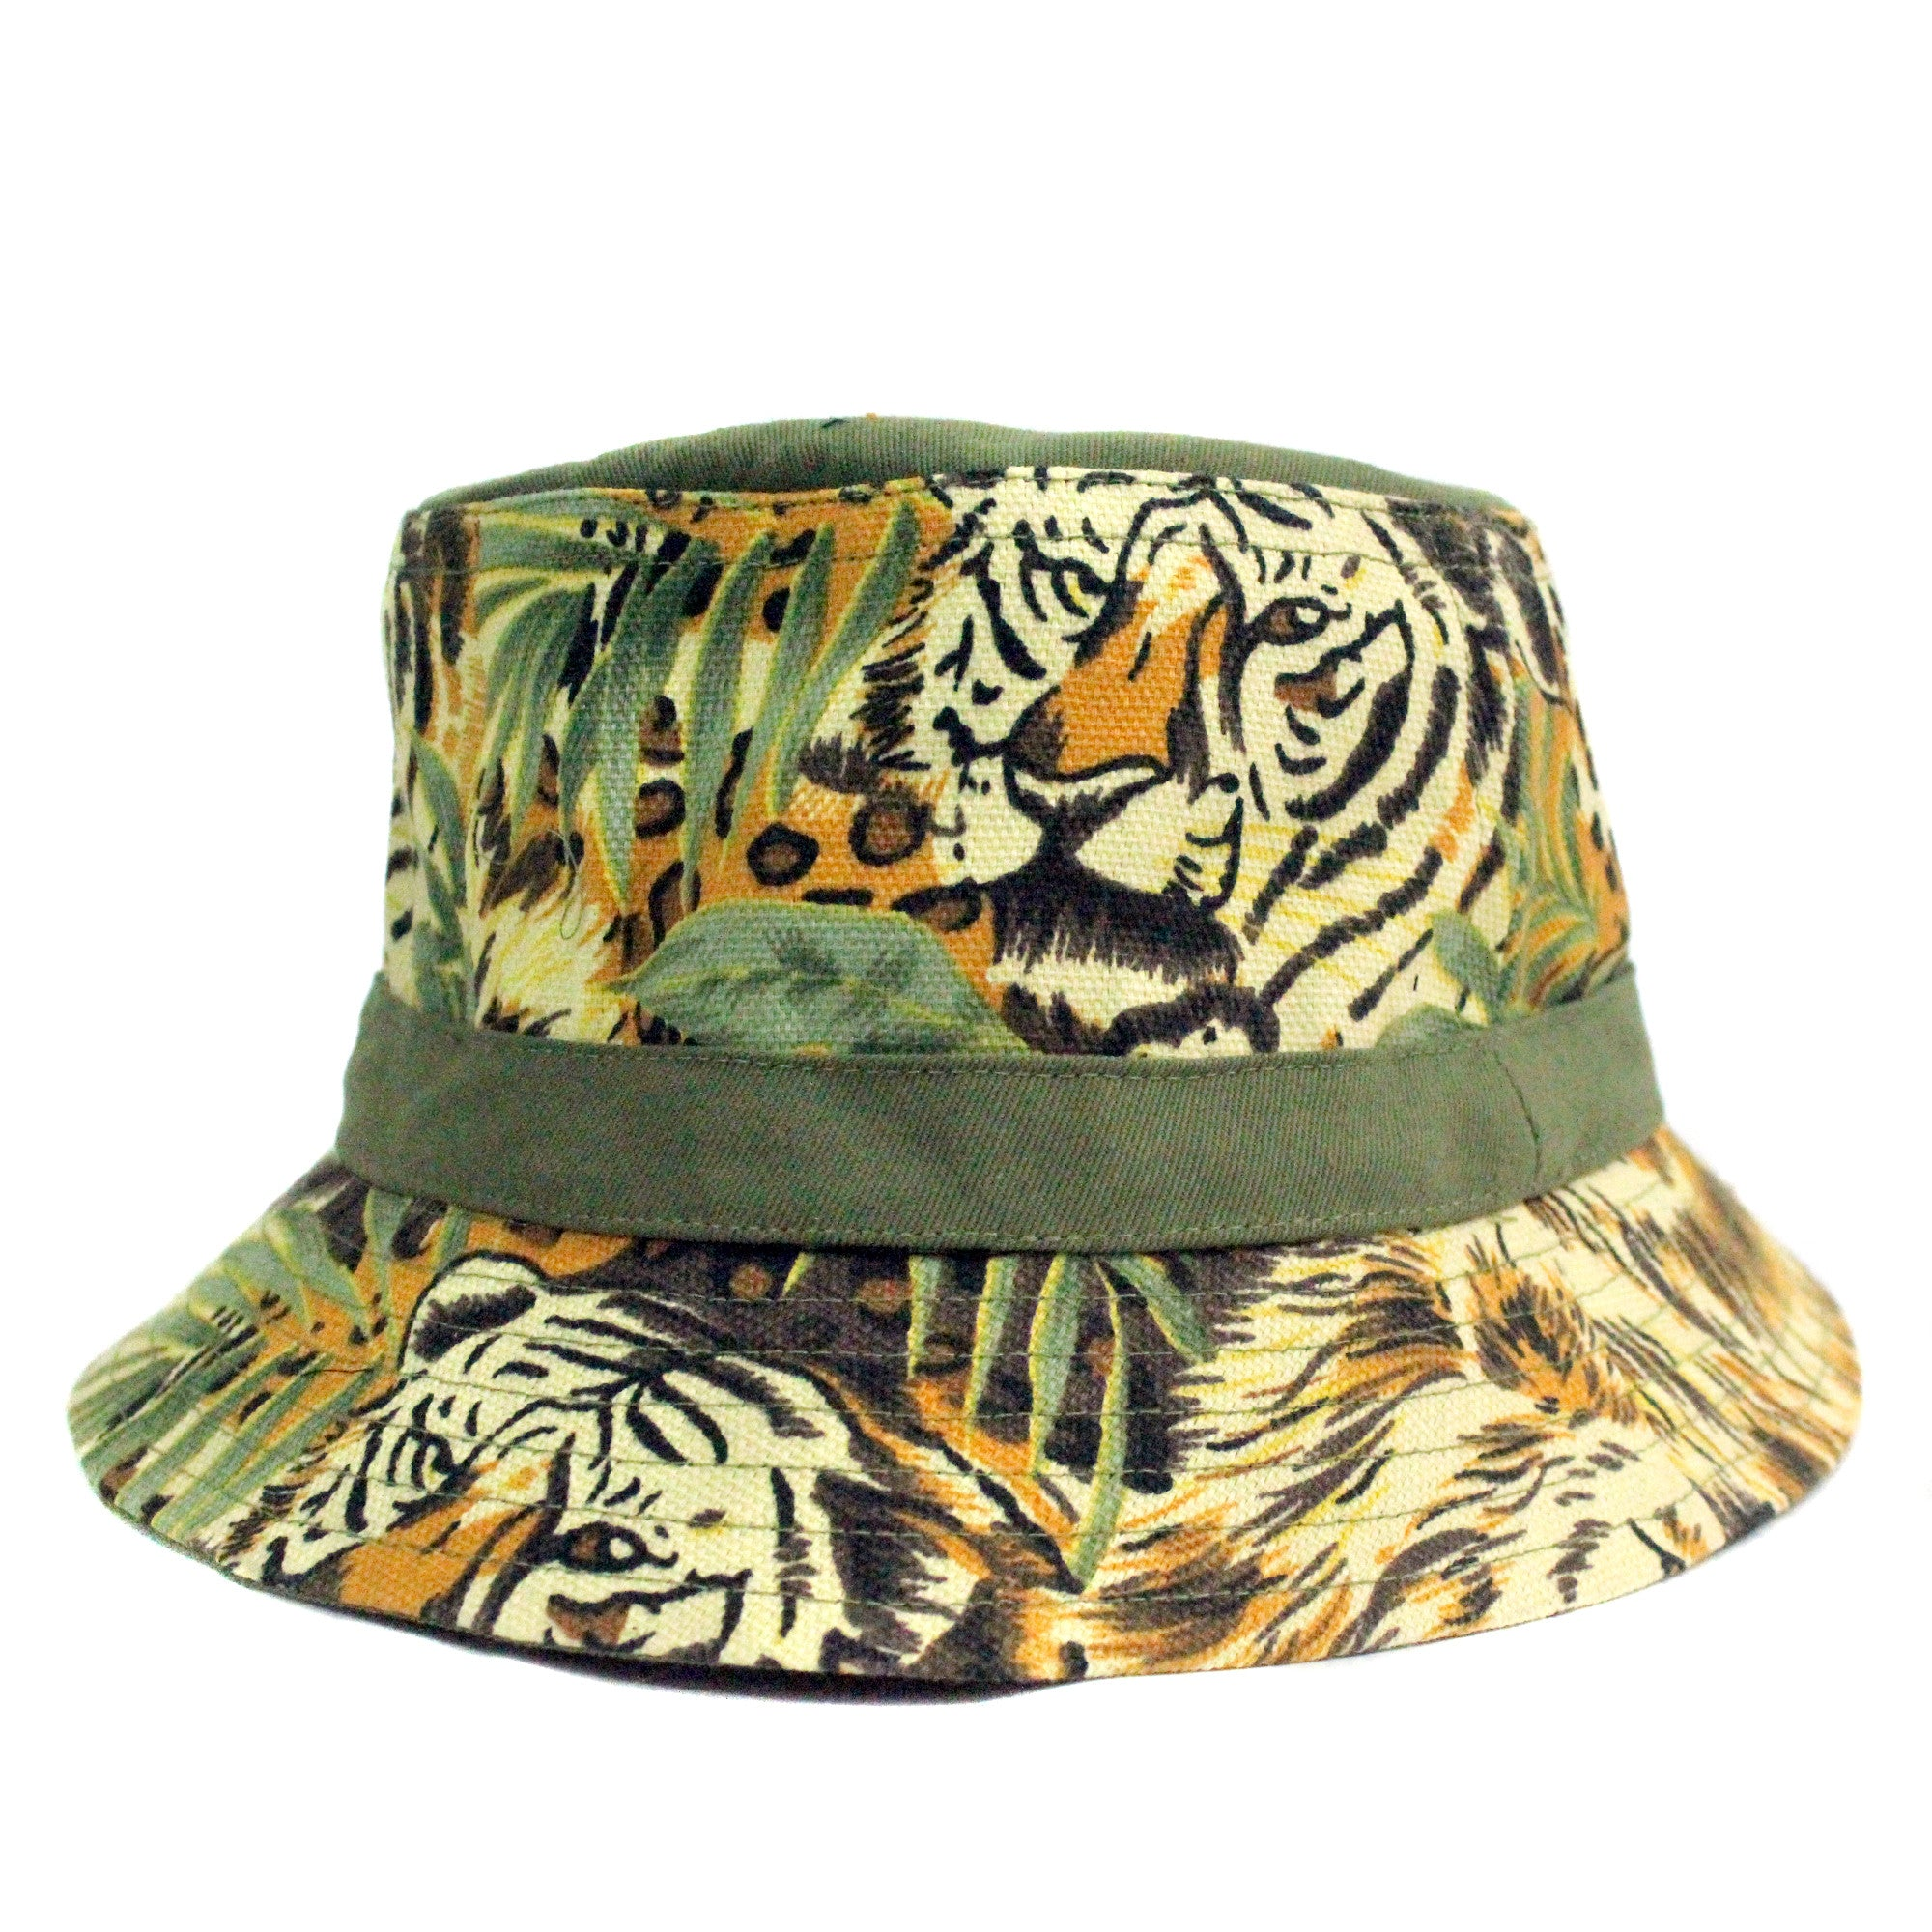 Handcrafted Bucket Hat for some music festival fashion inspiration , in trendy khaki military cotton fabric and inspired for nature safaris in kenya and the amazon jungle